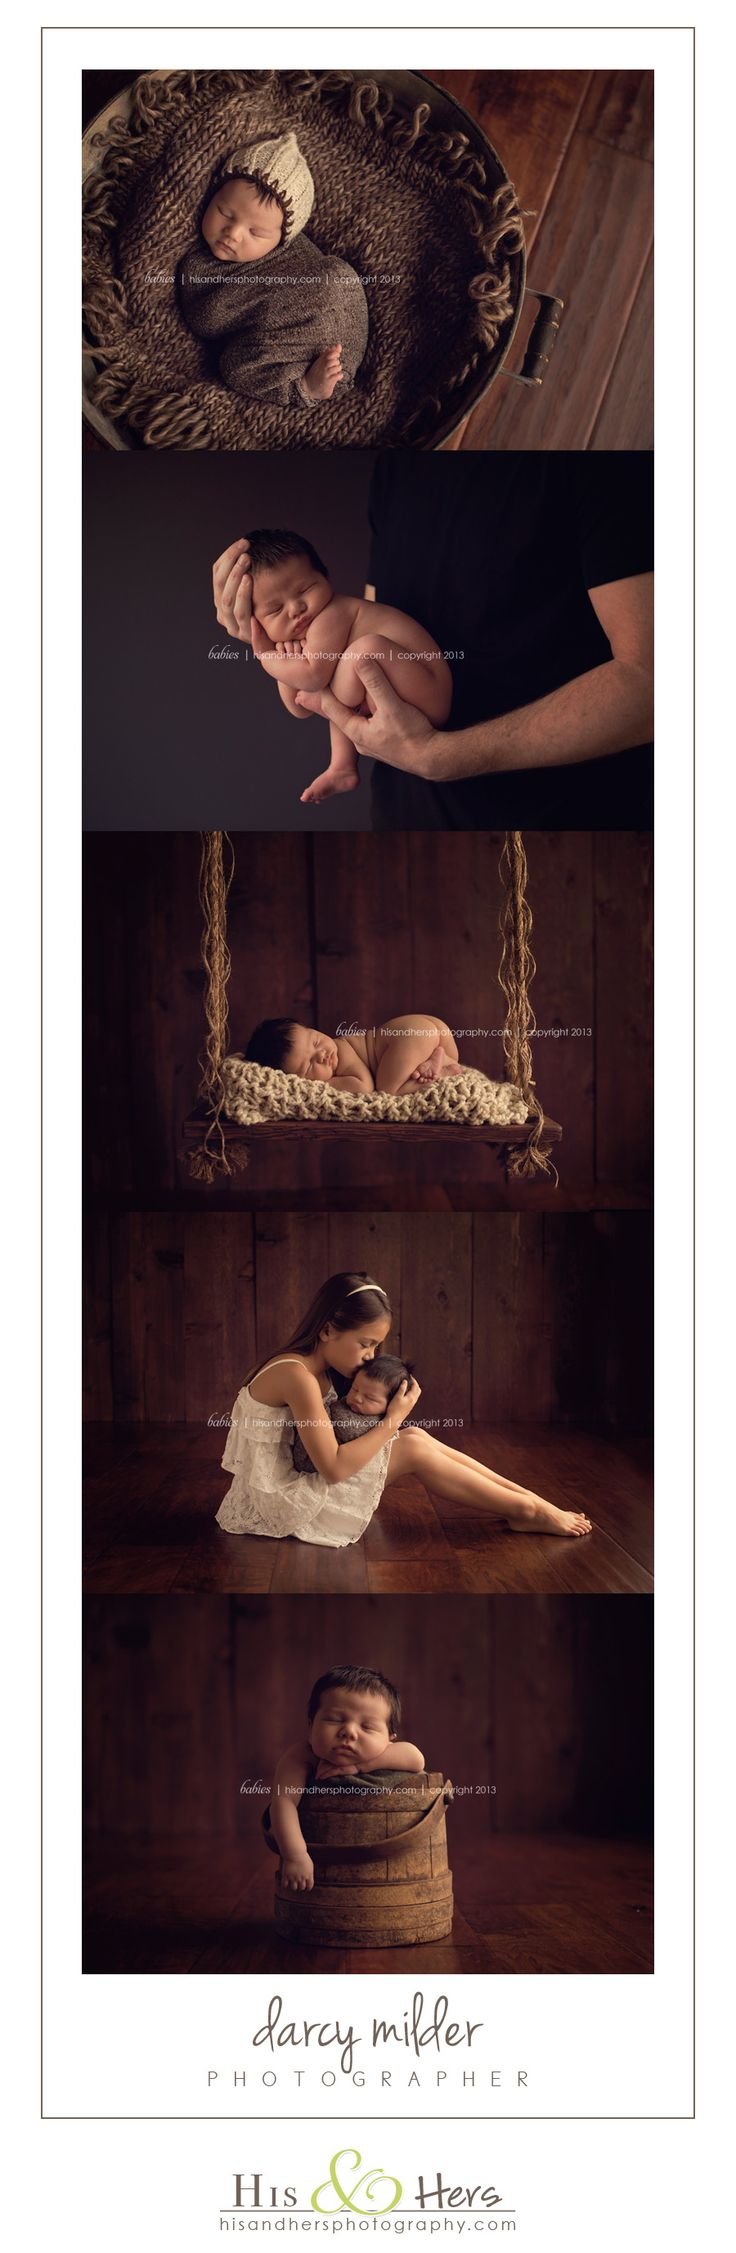 newborn #newborn | Iowa photographer, Darcy Milder | His & Hers